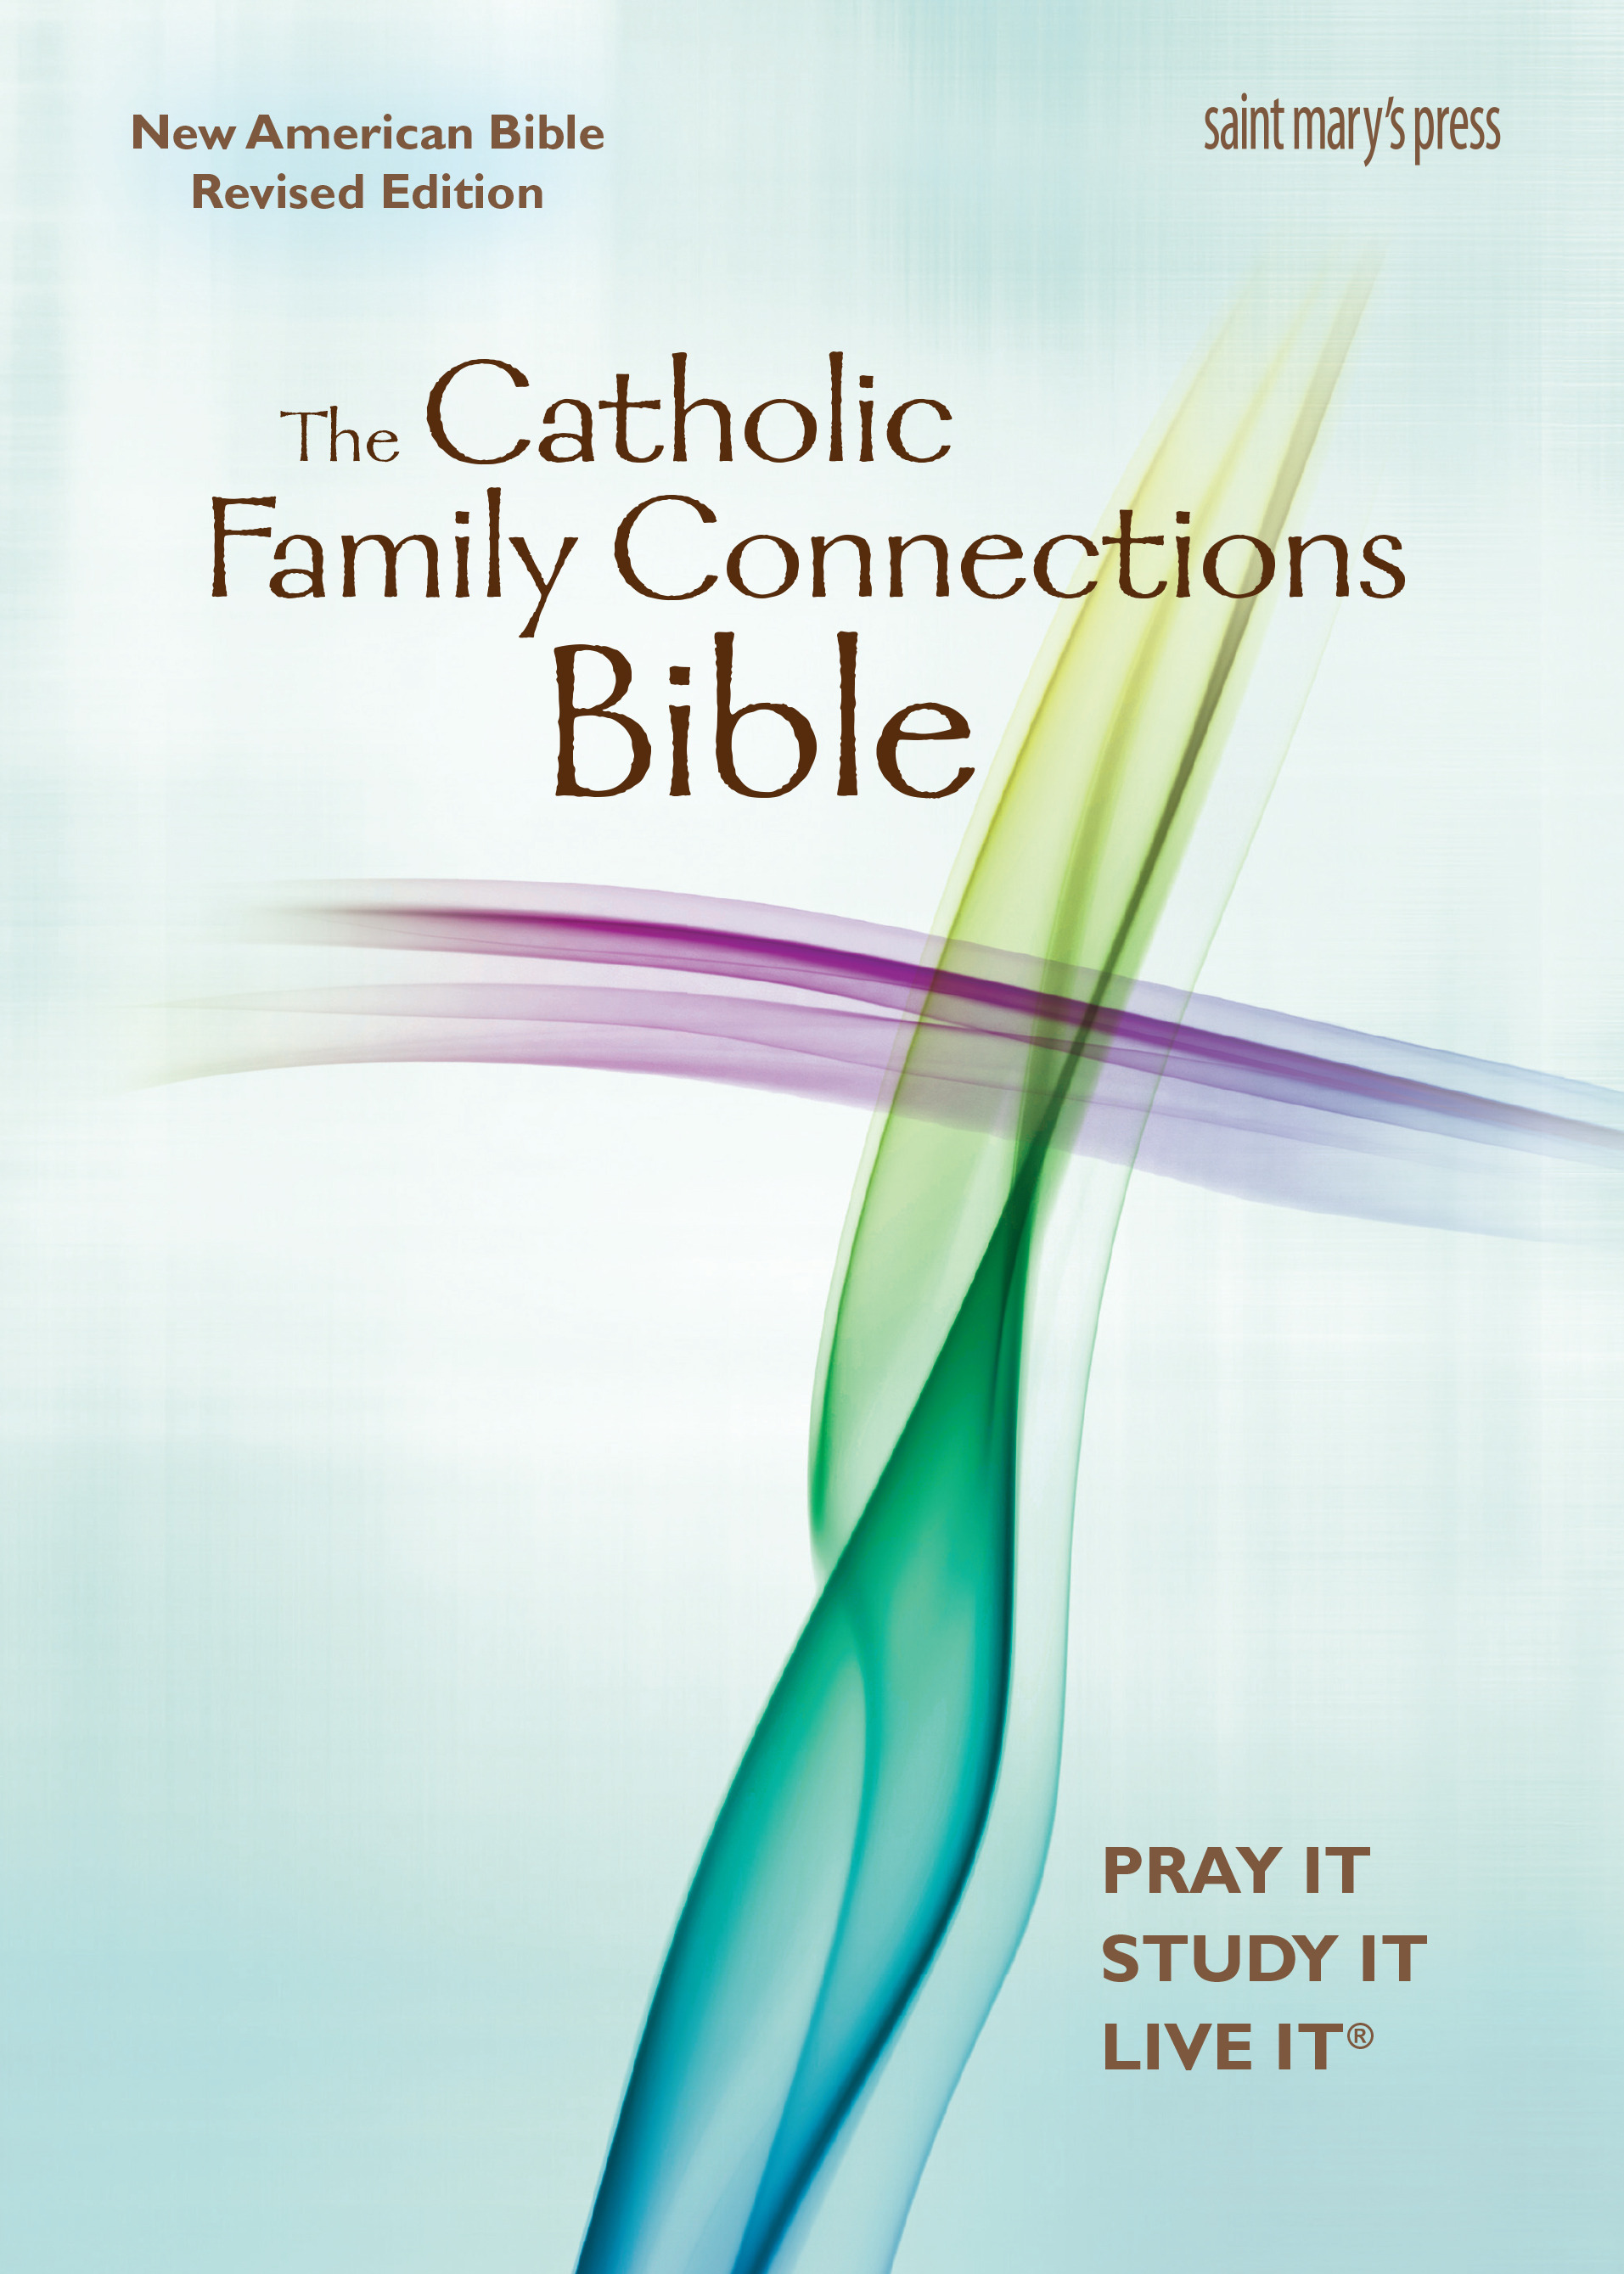 The Catholic Family Connections Bible ‒ New American Bible Revised Edition